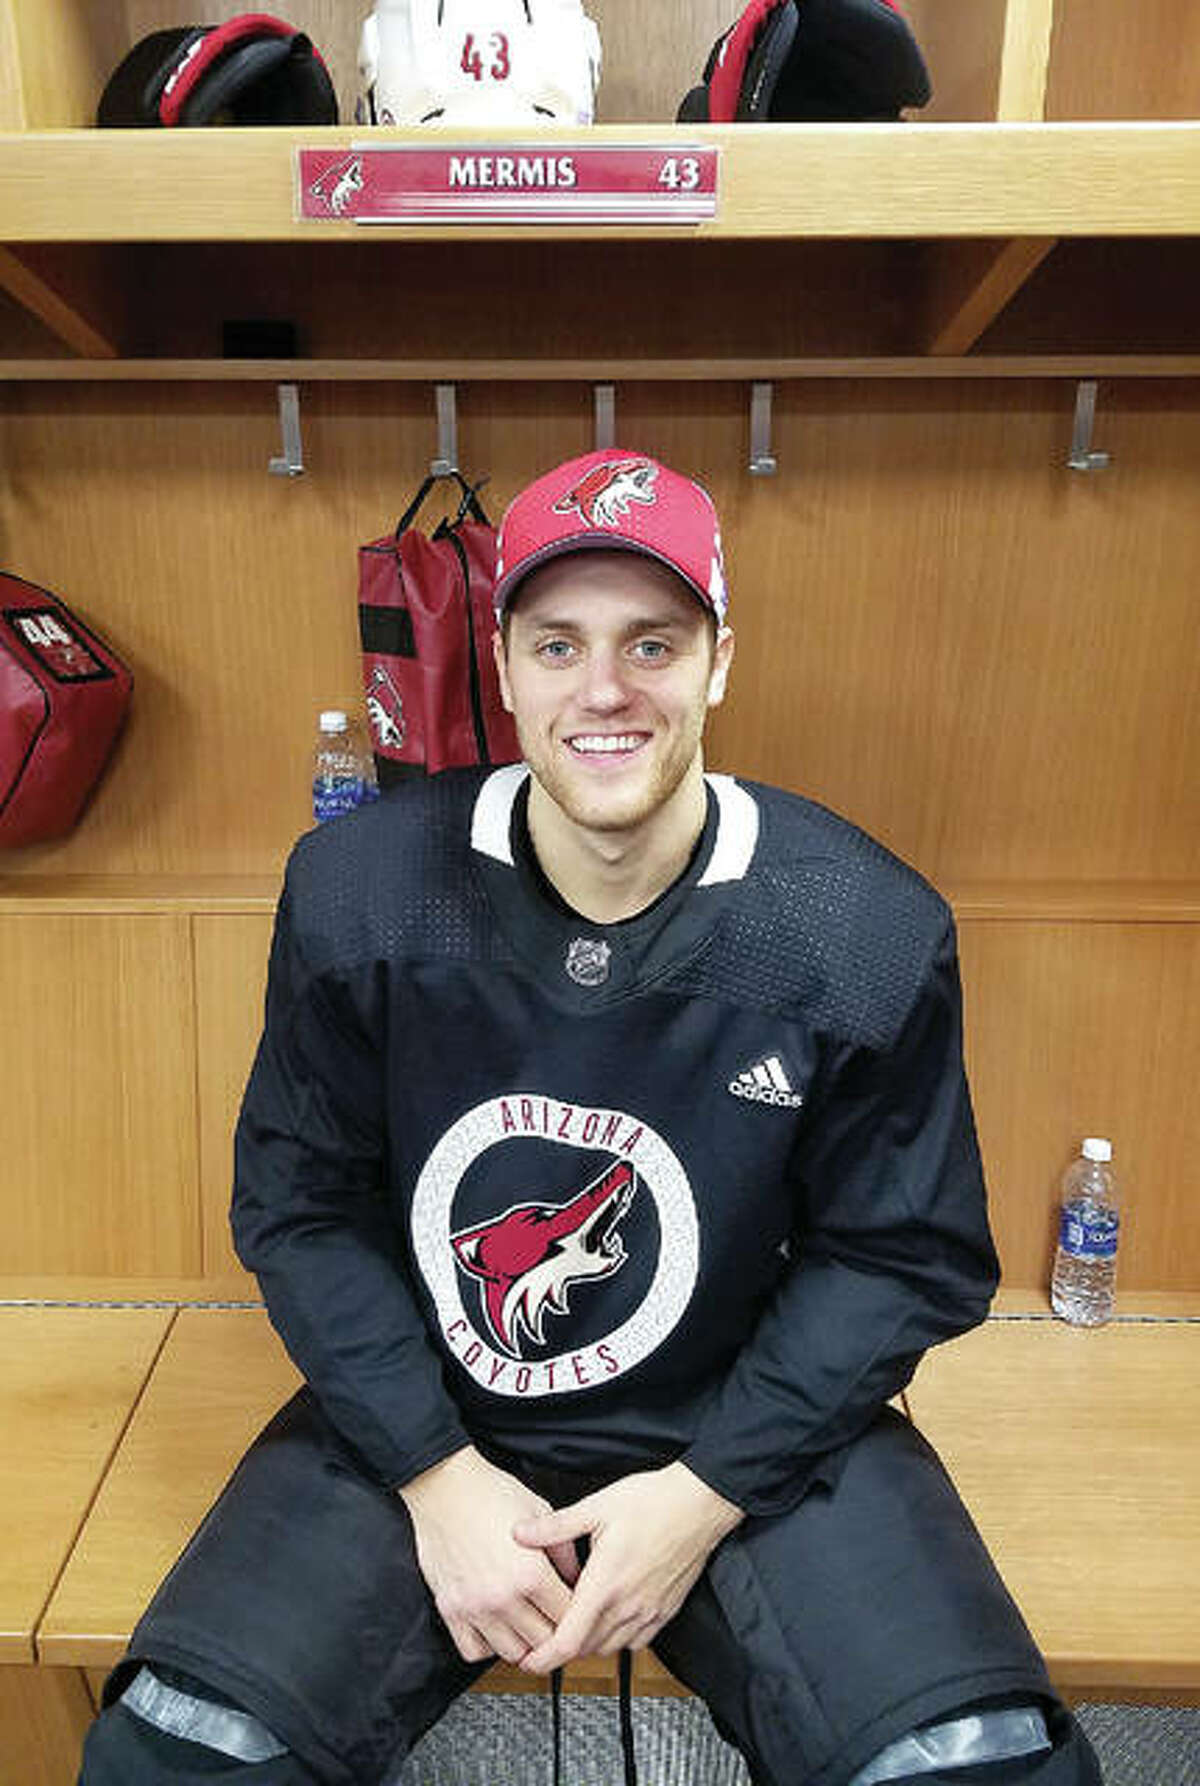 Former Alton High standout and Telegraph Player of the Year Dakota Mermis of the Arizona Coyotes played against the favorite team of his childhood Thursday when Arizona faced the Blues at Scottrade Center. Mermis was called up by the Coyotes last week. He pictured in front of his locker in the Arizona locker room prior to Thursday's game.